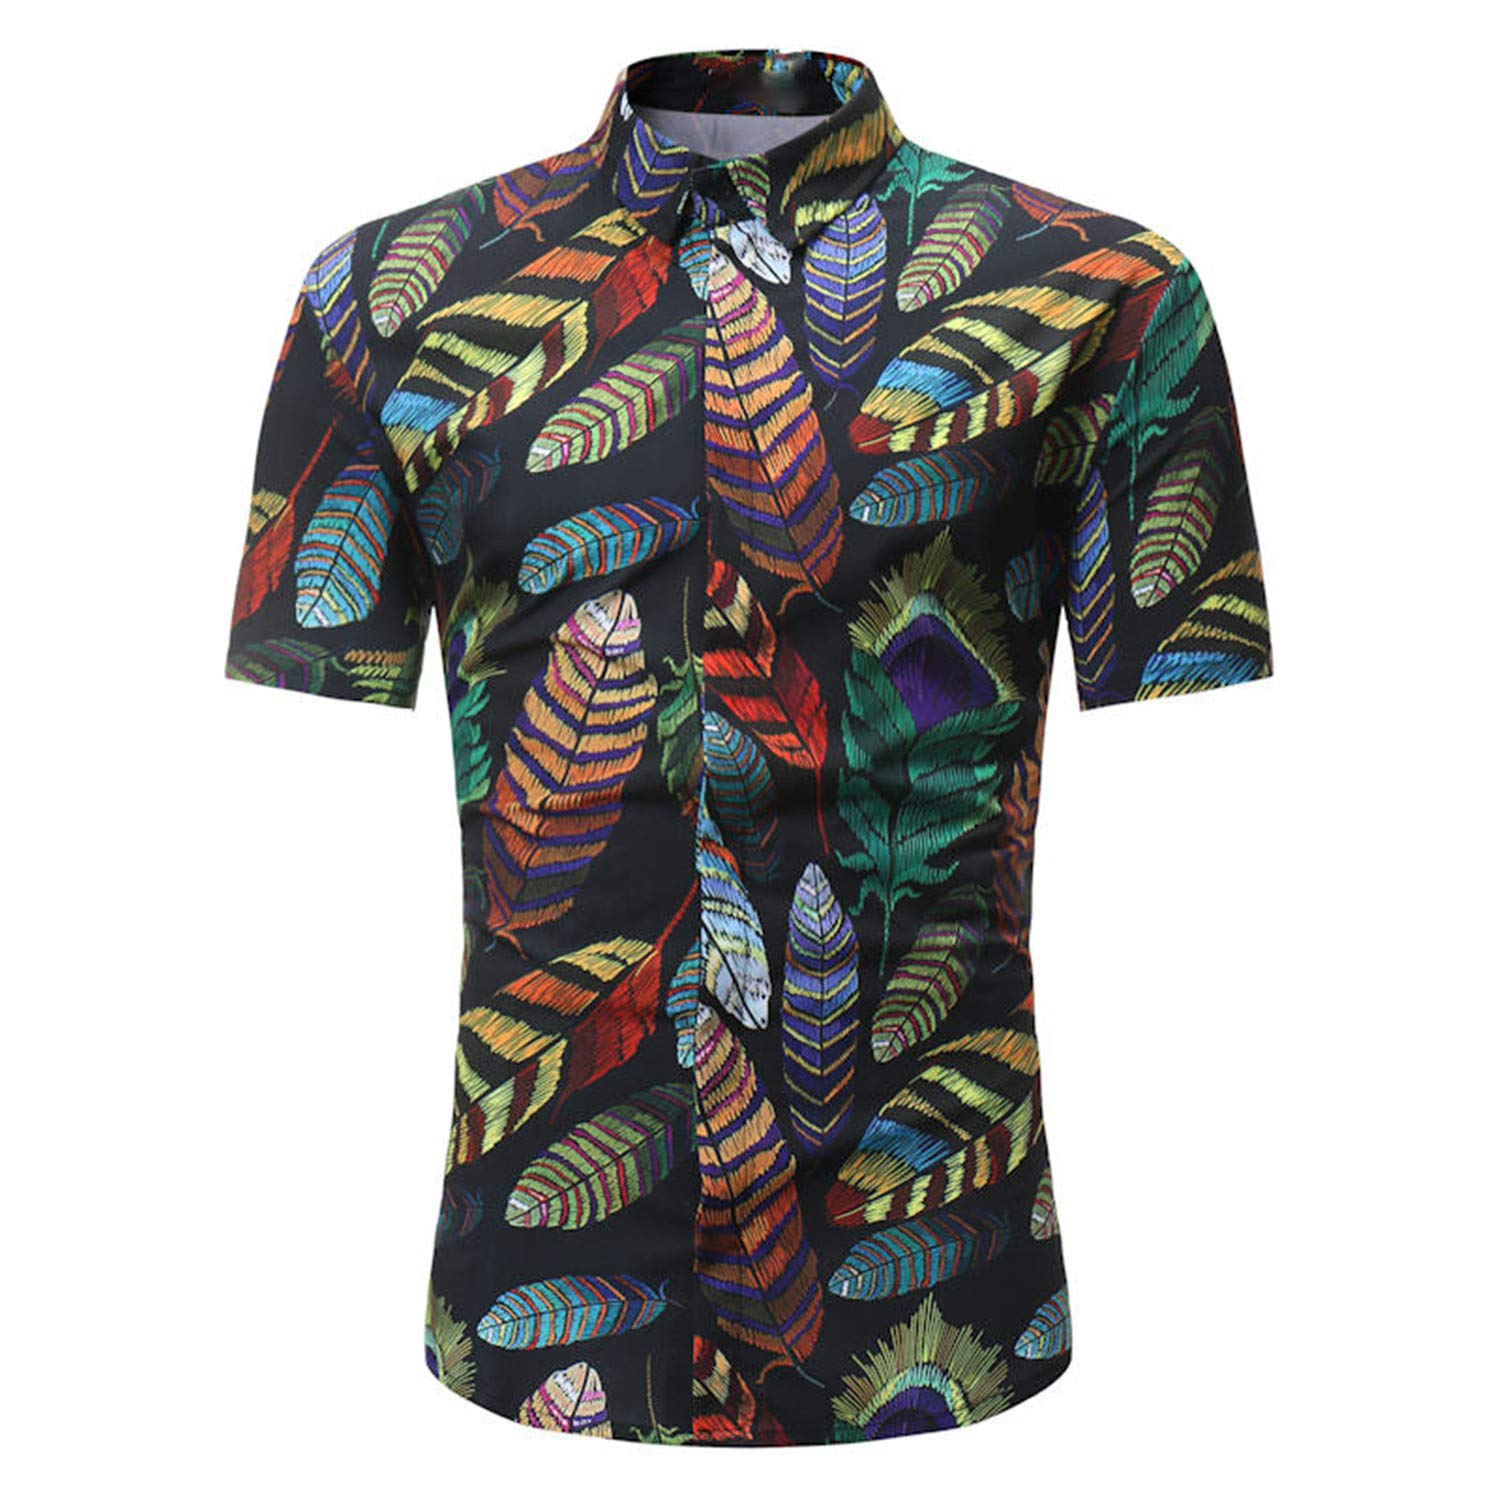 Dersimio Men Shirt Summer Style Palm Tree Print Beach Hawaiian Shirt Men Casual Short Sleeve Hawaii Shirt